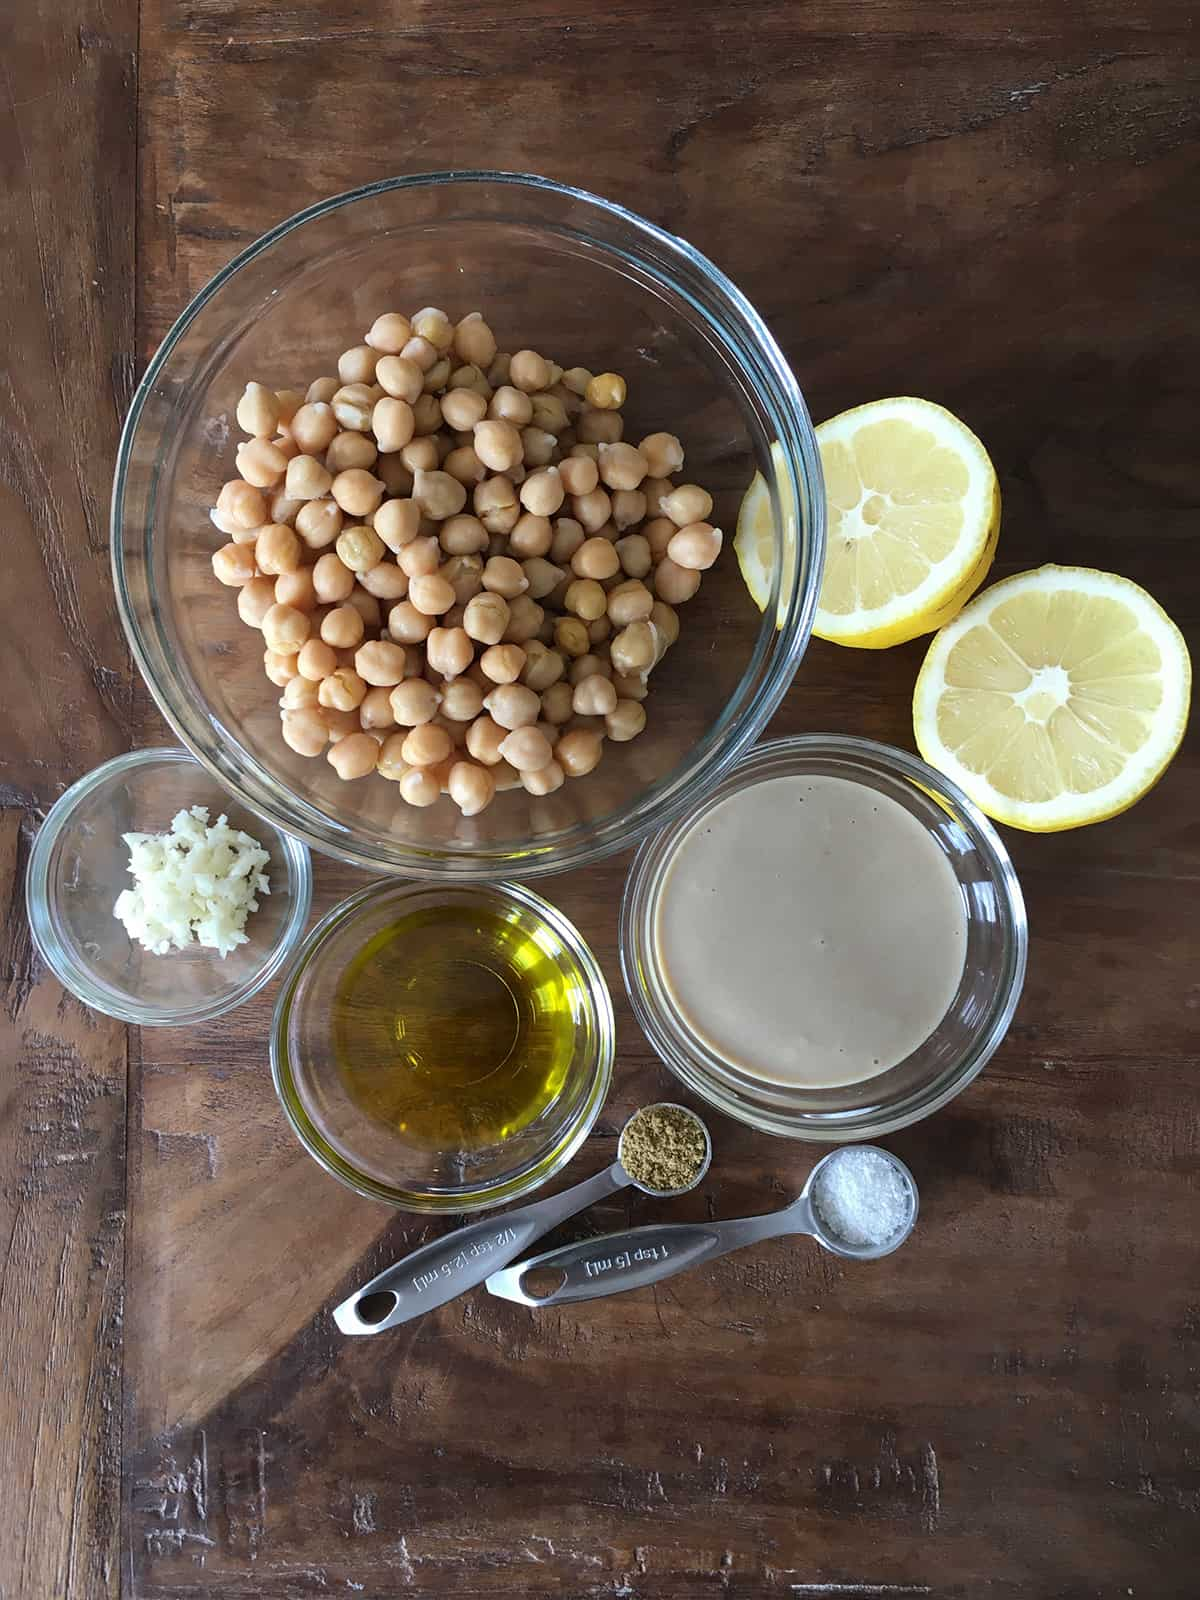 Chickpeas, lemon halves, spices and other hummus ingredients in glass food prep bowls on a brown wood table